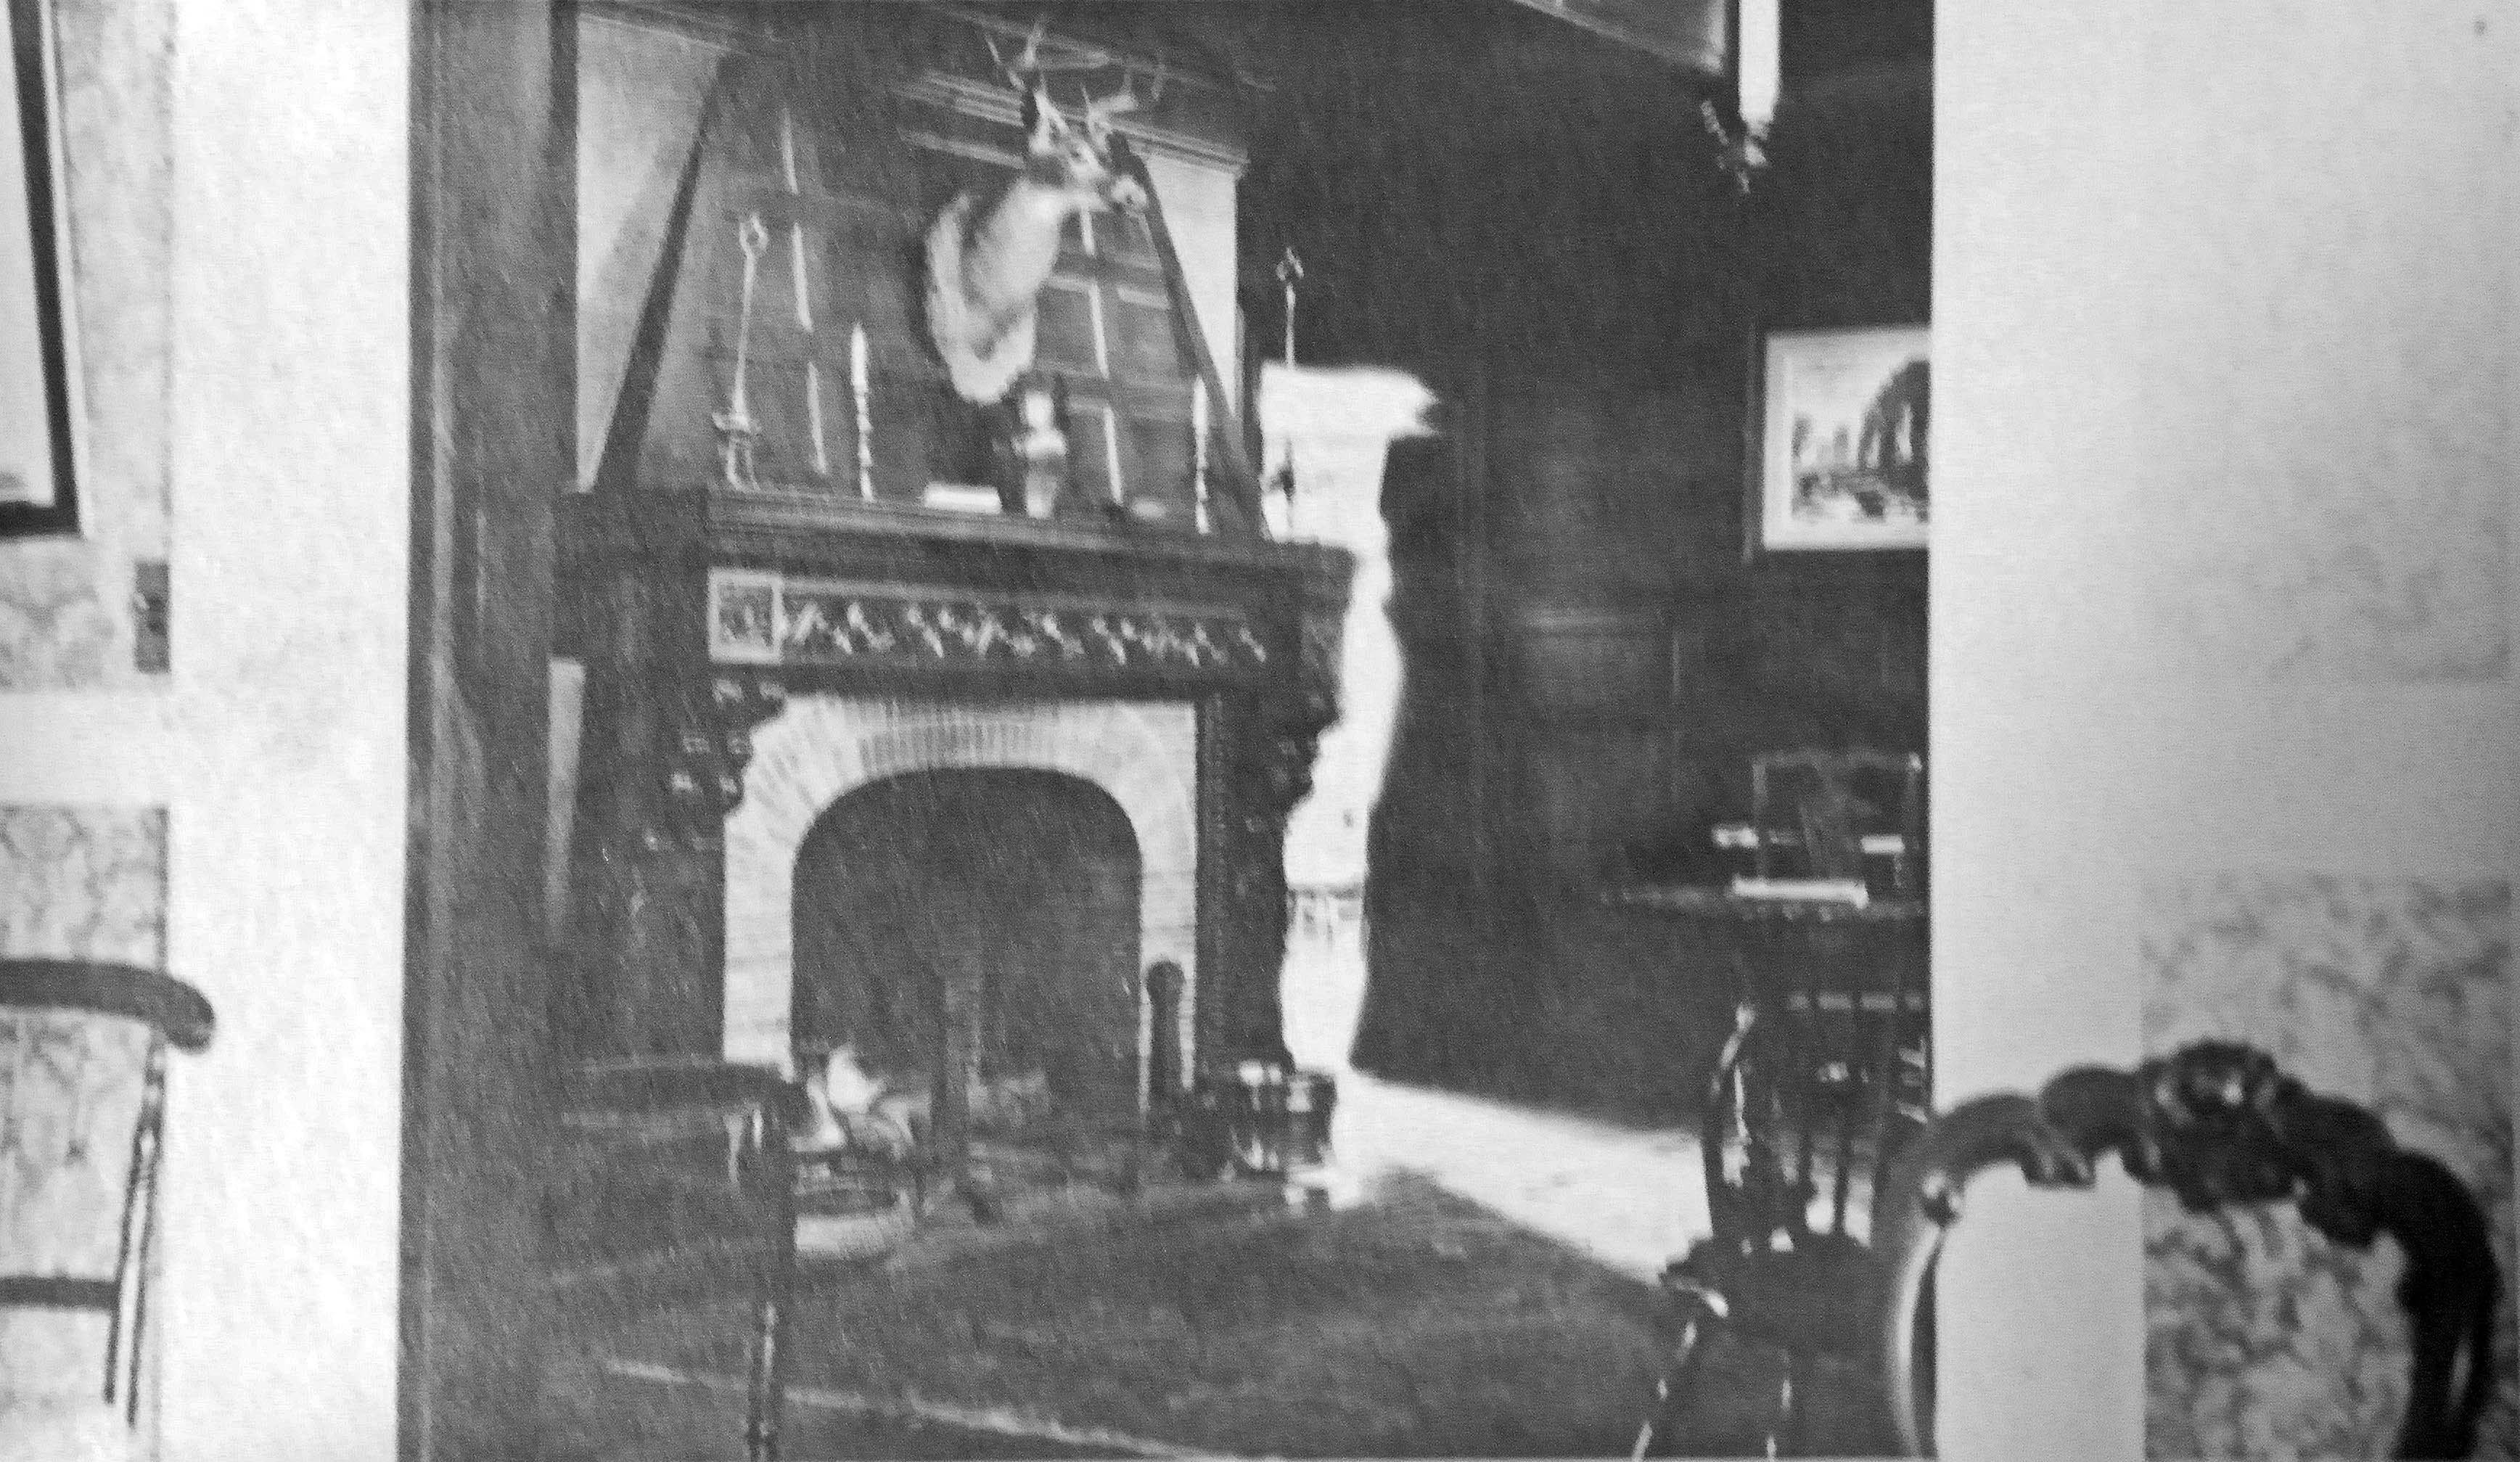 President Sarah Gibson Blanding removed the elaborate central fireplace and its accoutrements in 1946.